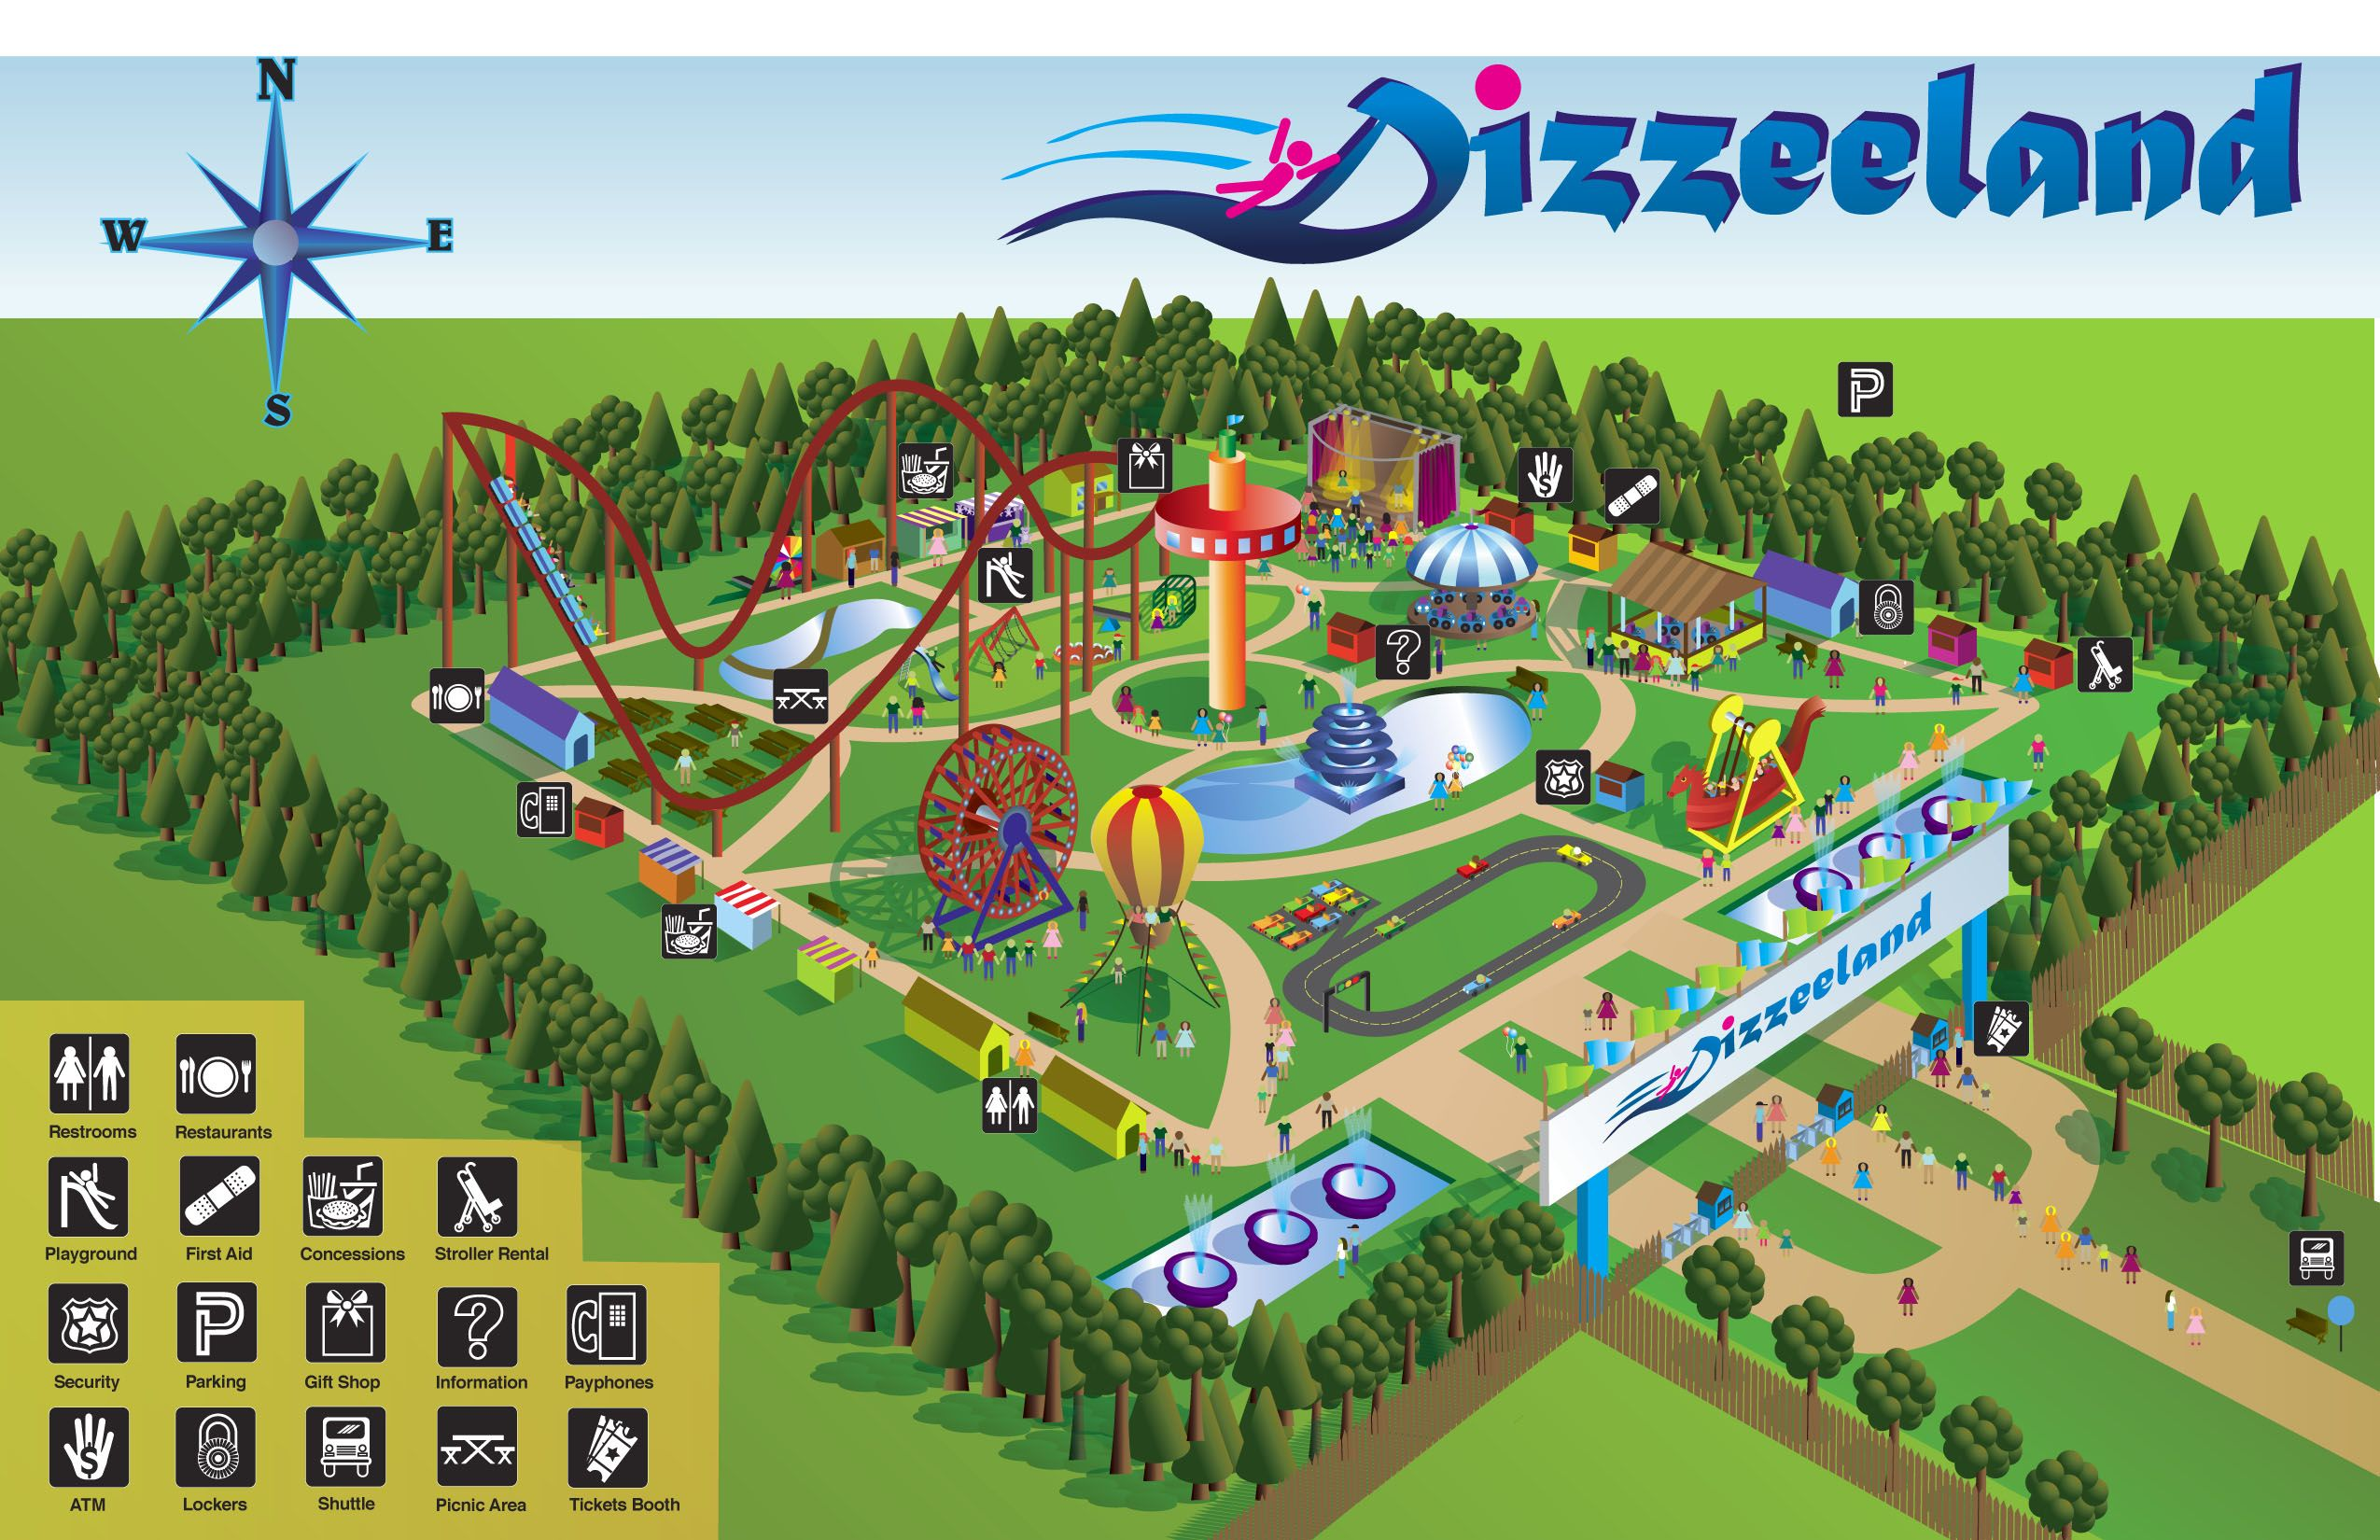 Teach Map Skills Using Amusement Park Map Read The Map Key With Students And Ask Them To Find Specific Attraction Map Skills Map Worksheets Geography Project